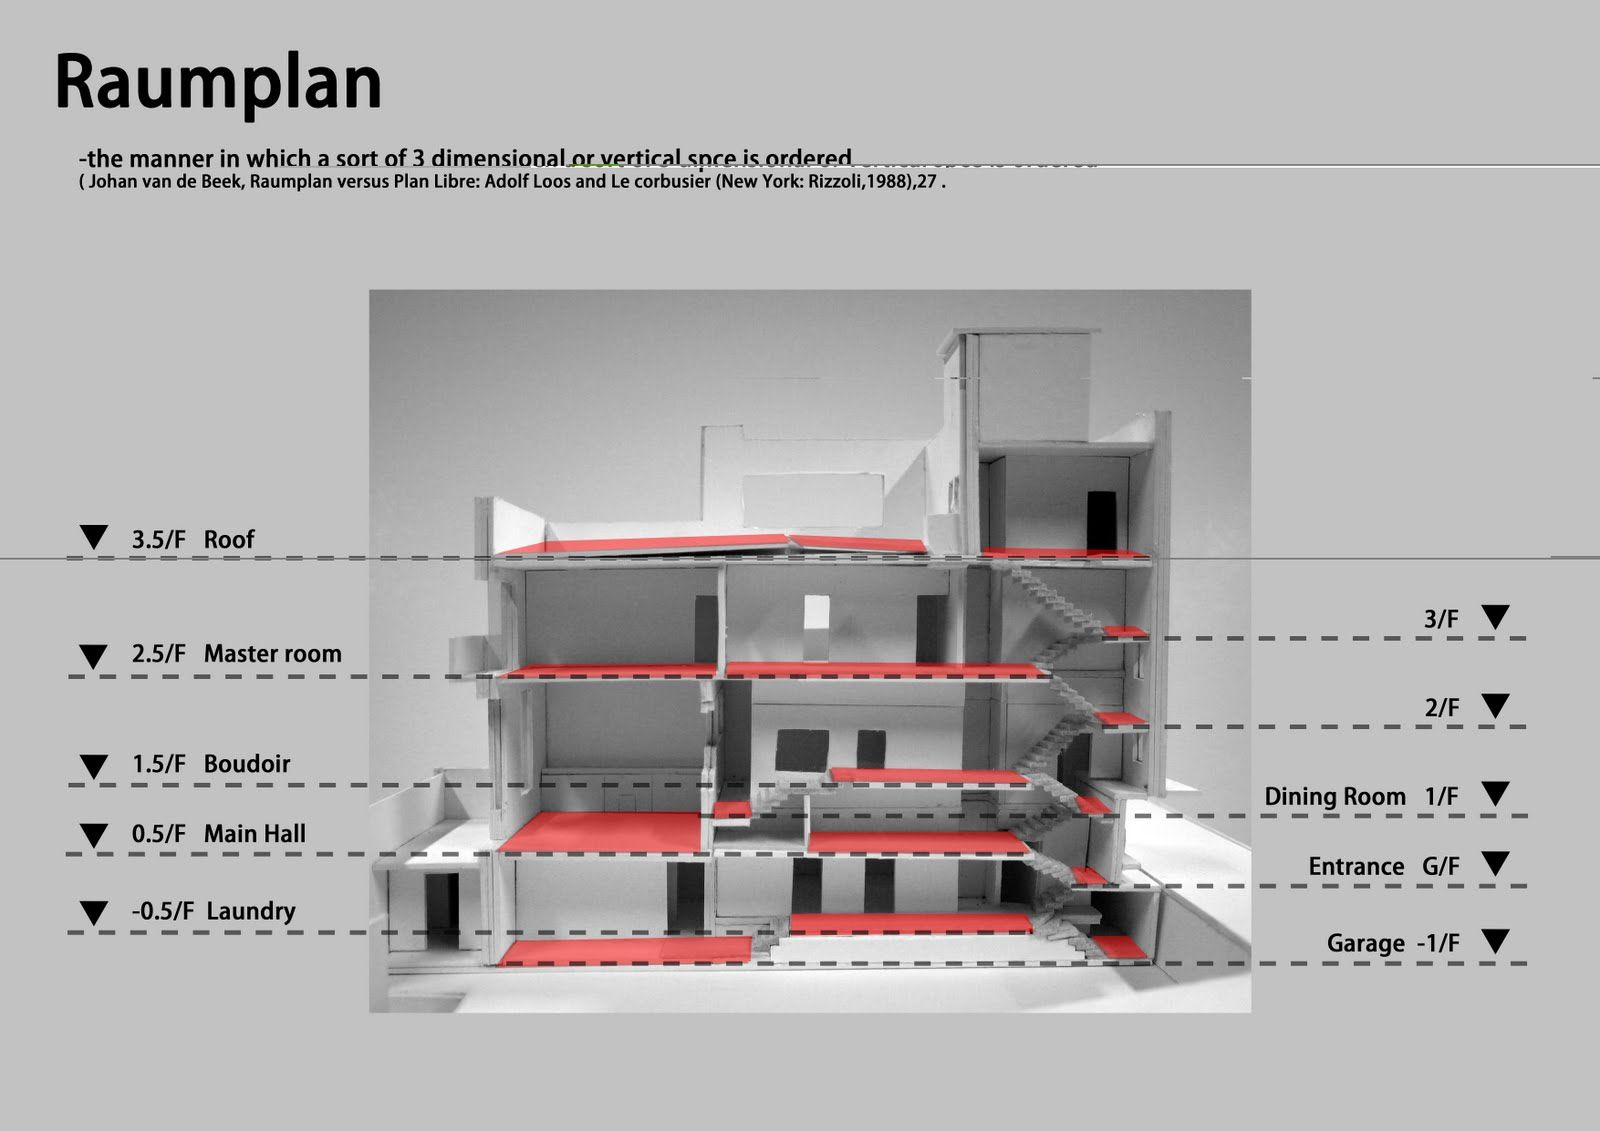 Raumplan analysis loos pinterest villas for Architecture de plan libre